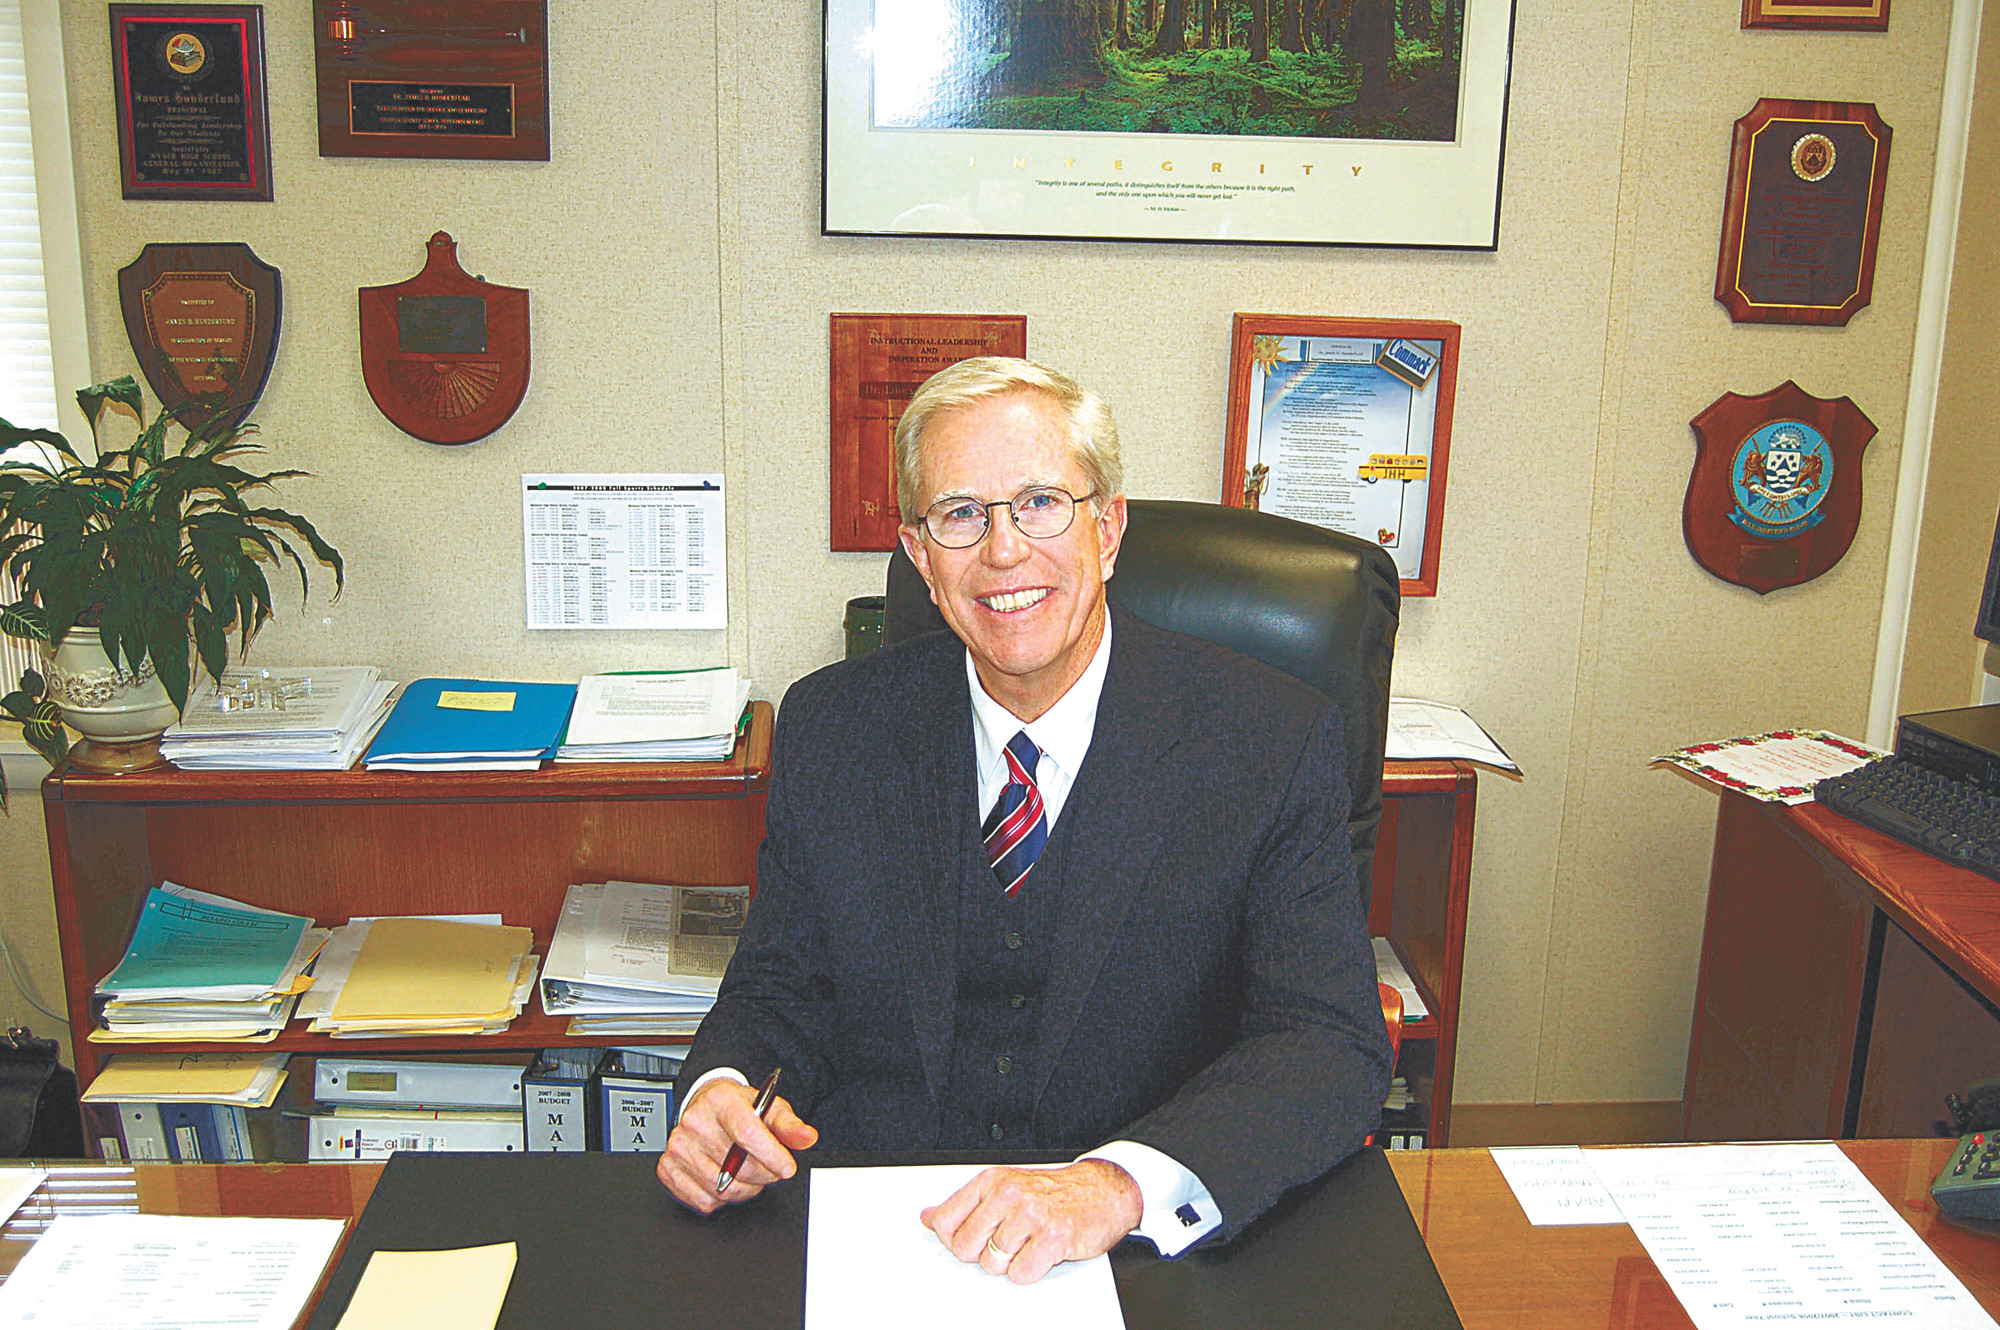 Malverne Superintendent Dr. James Hunderfund has been an educator for nearly 50 years.